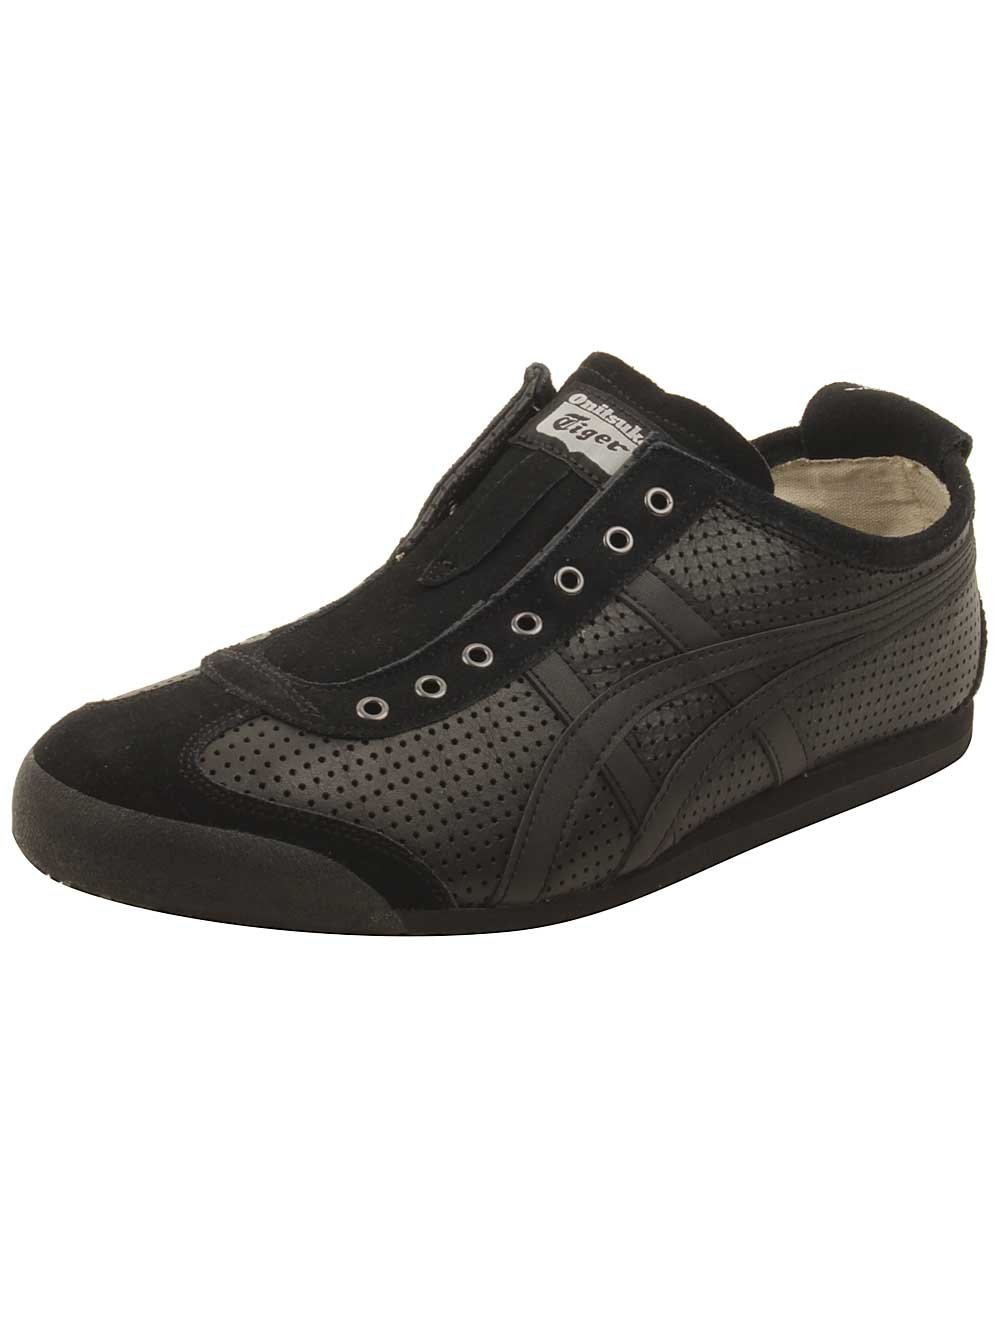 Onitsuka Tiger Mexico 66 Slip-on B0734Q38VG 11 D(M) US|Black